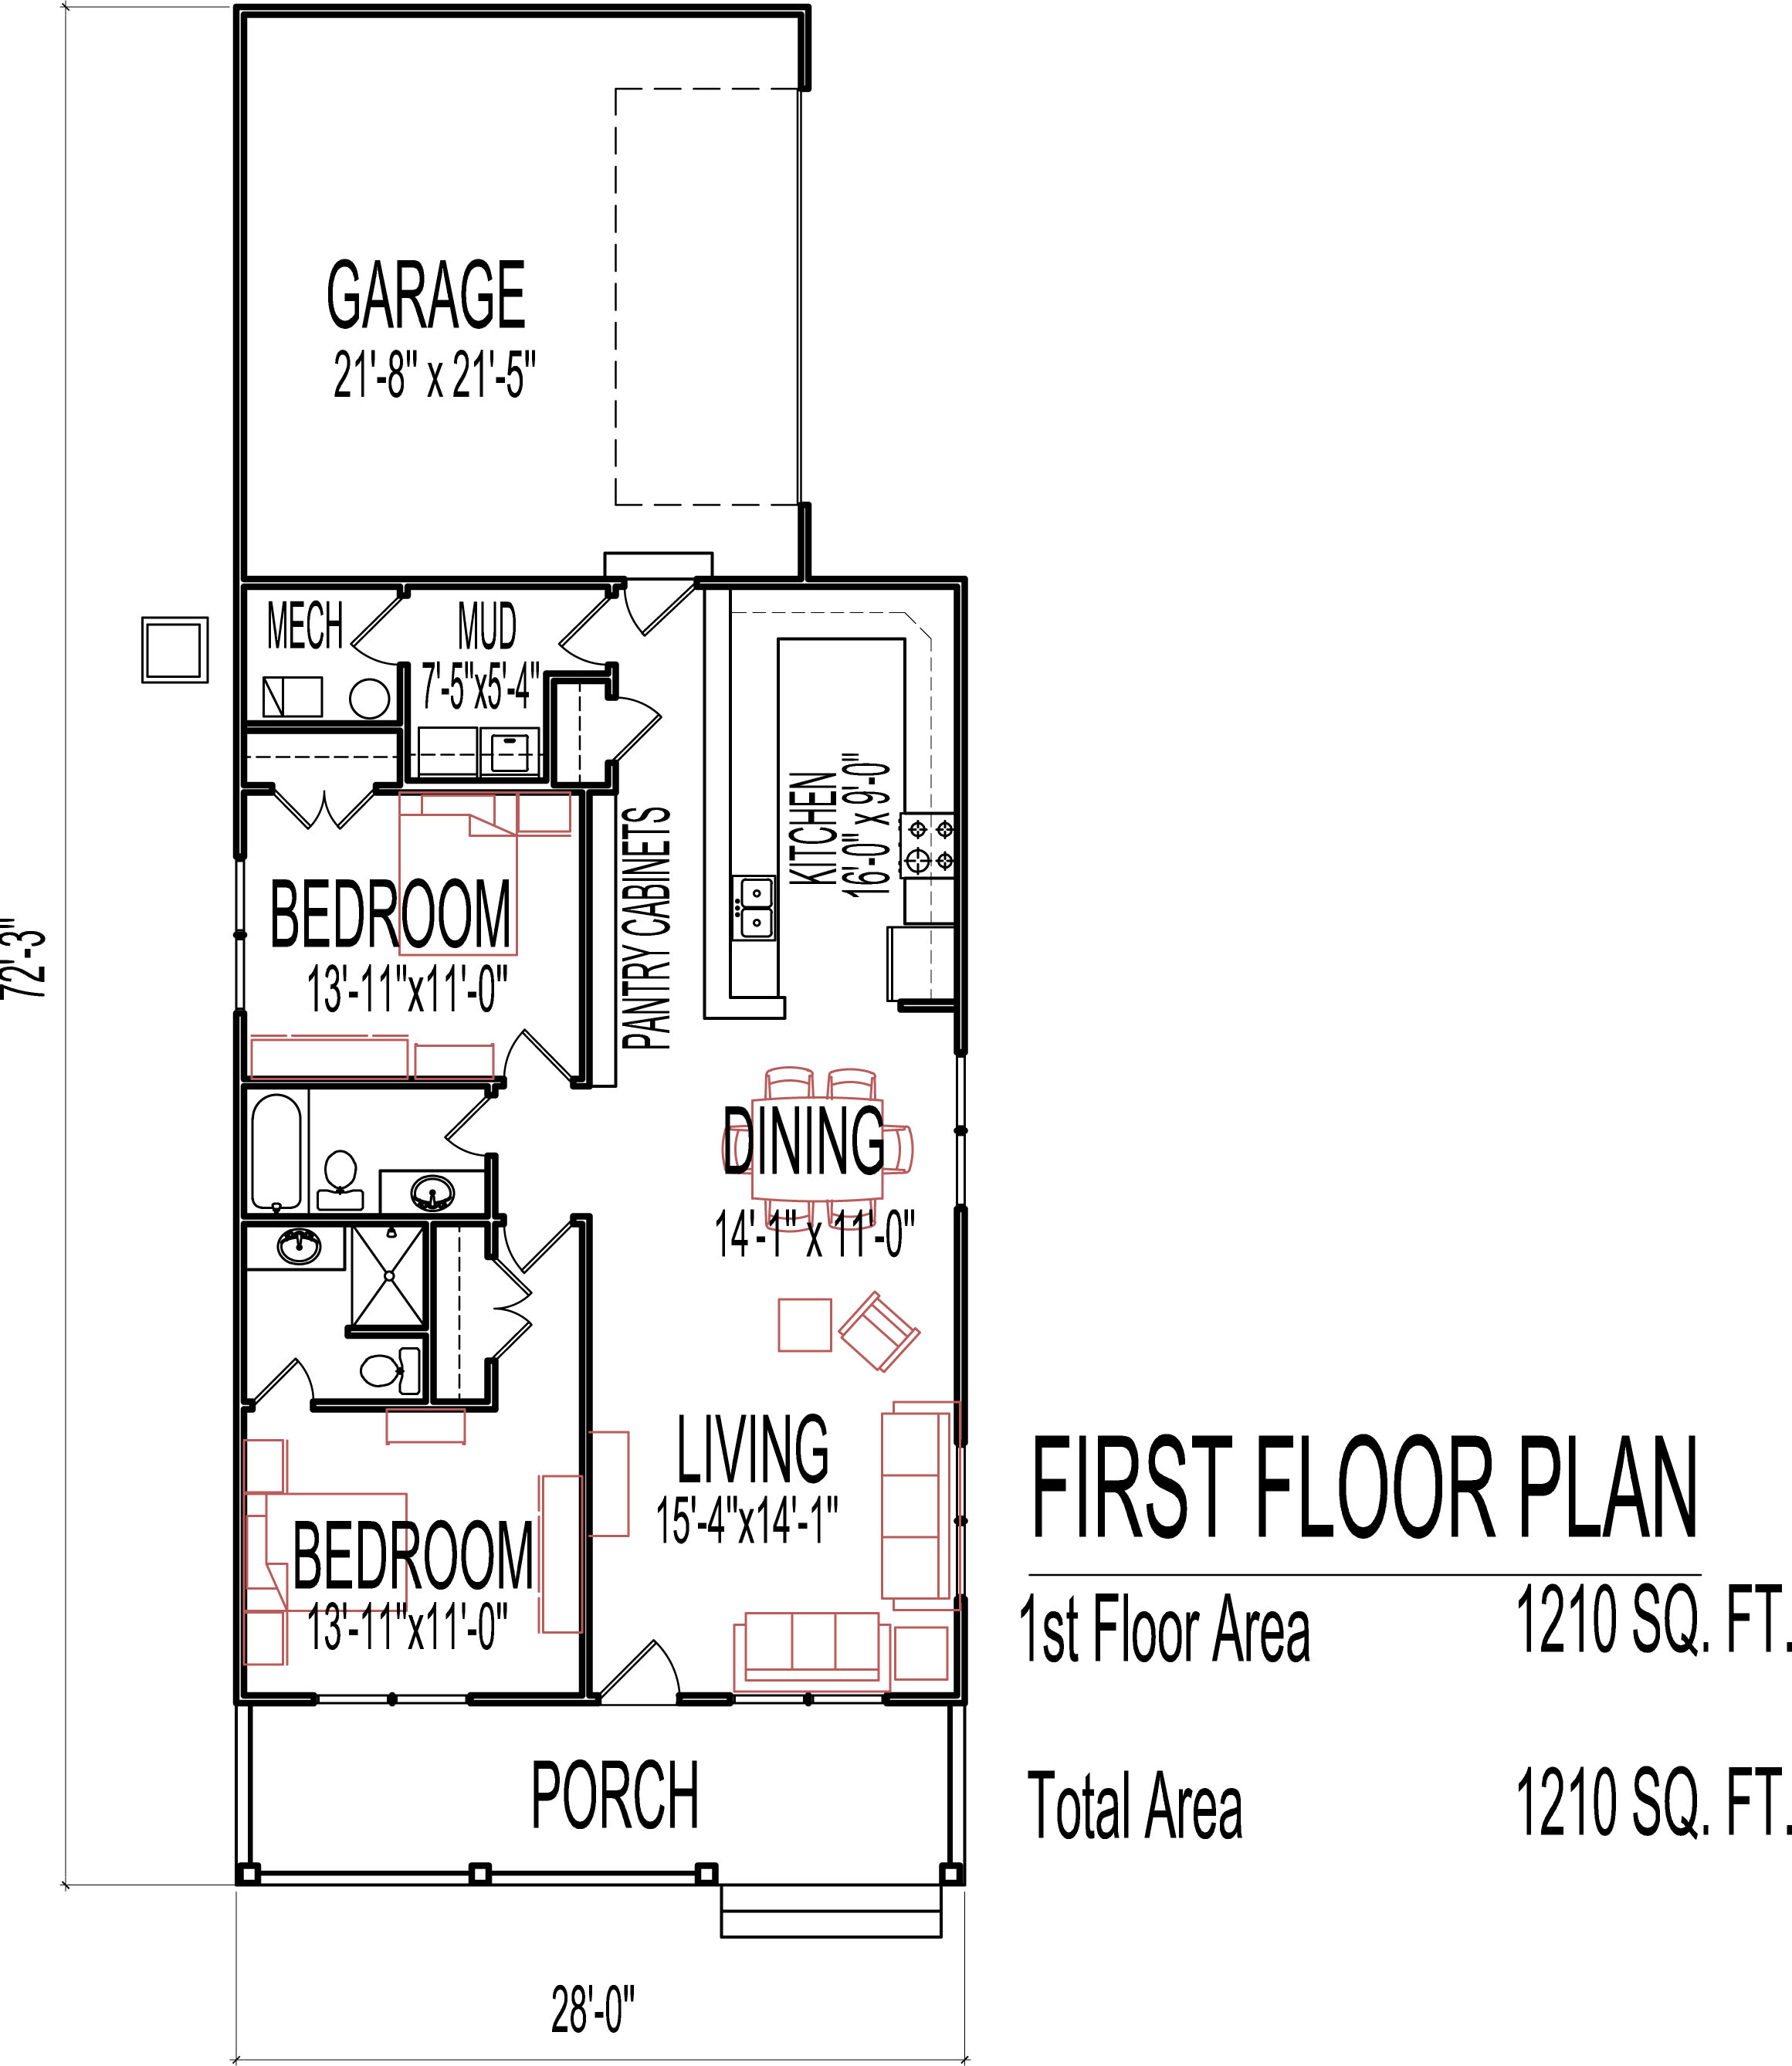 Small two bedroom house plans low cost 1200 sq ft one for One story house blueprints